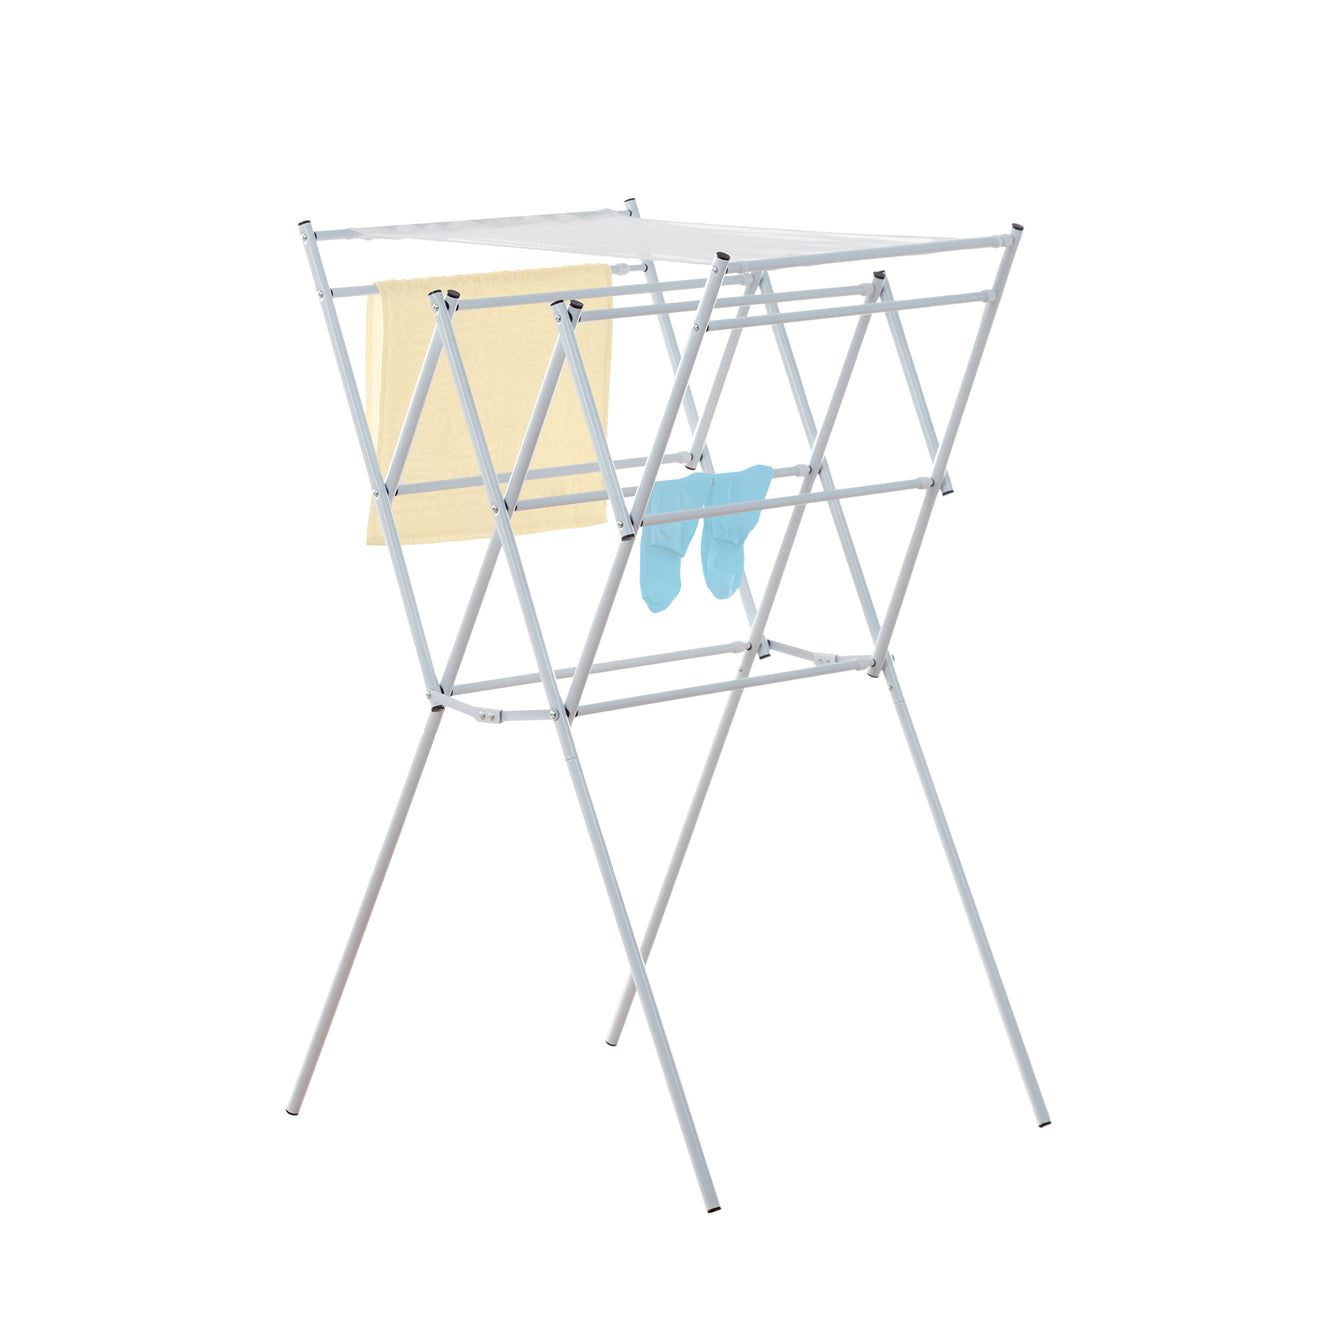 Accordion Style Laundry Drying Rack With Mesh Shelf - Style 5535